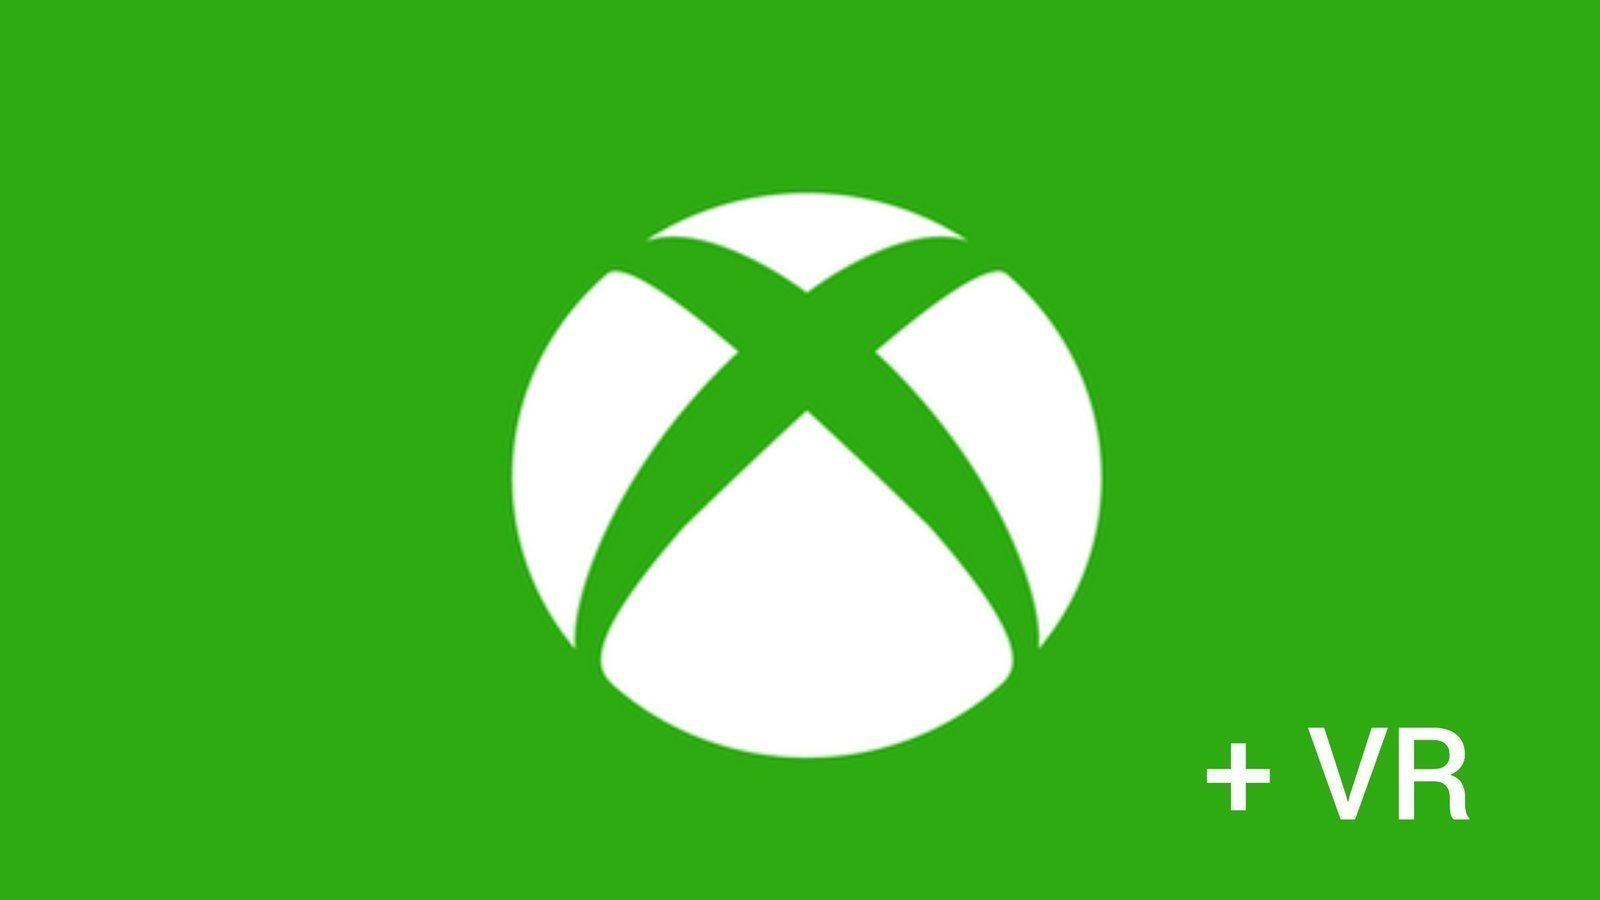 Petition · Bring VR to XBOX · Change.org